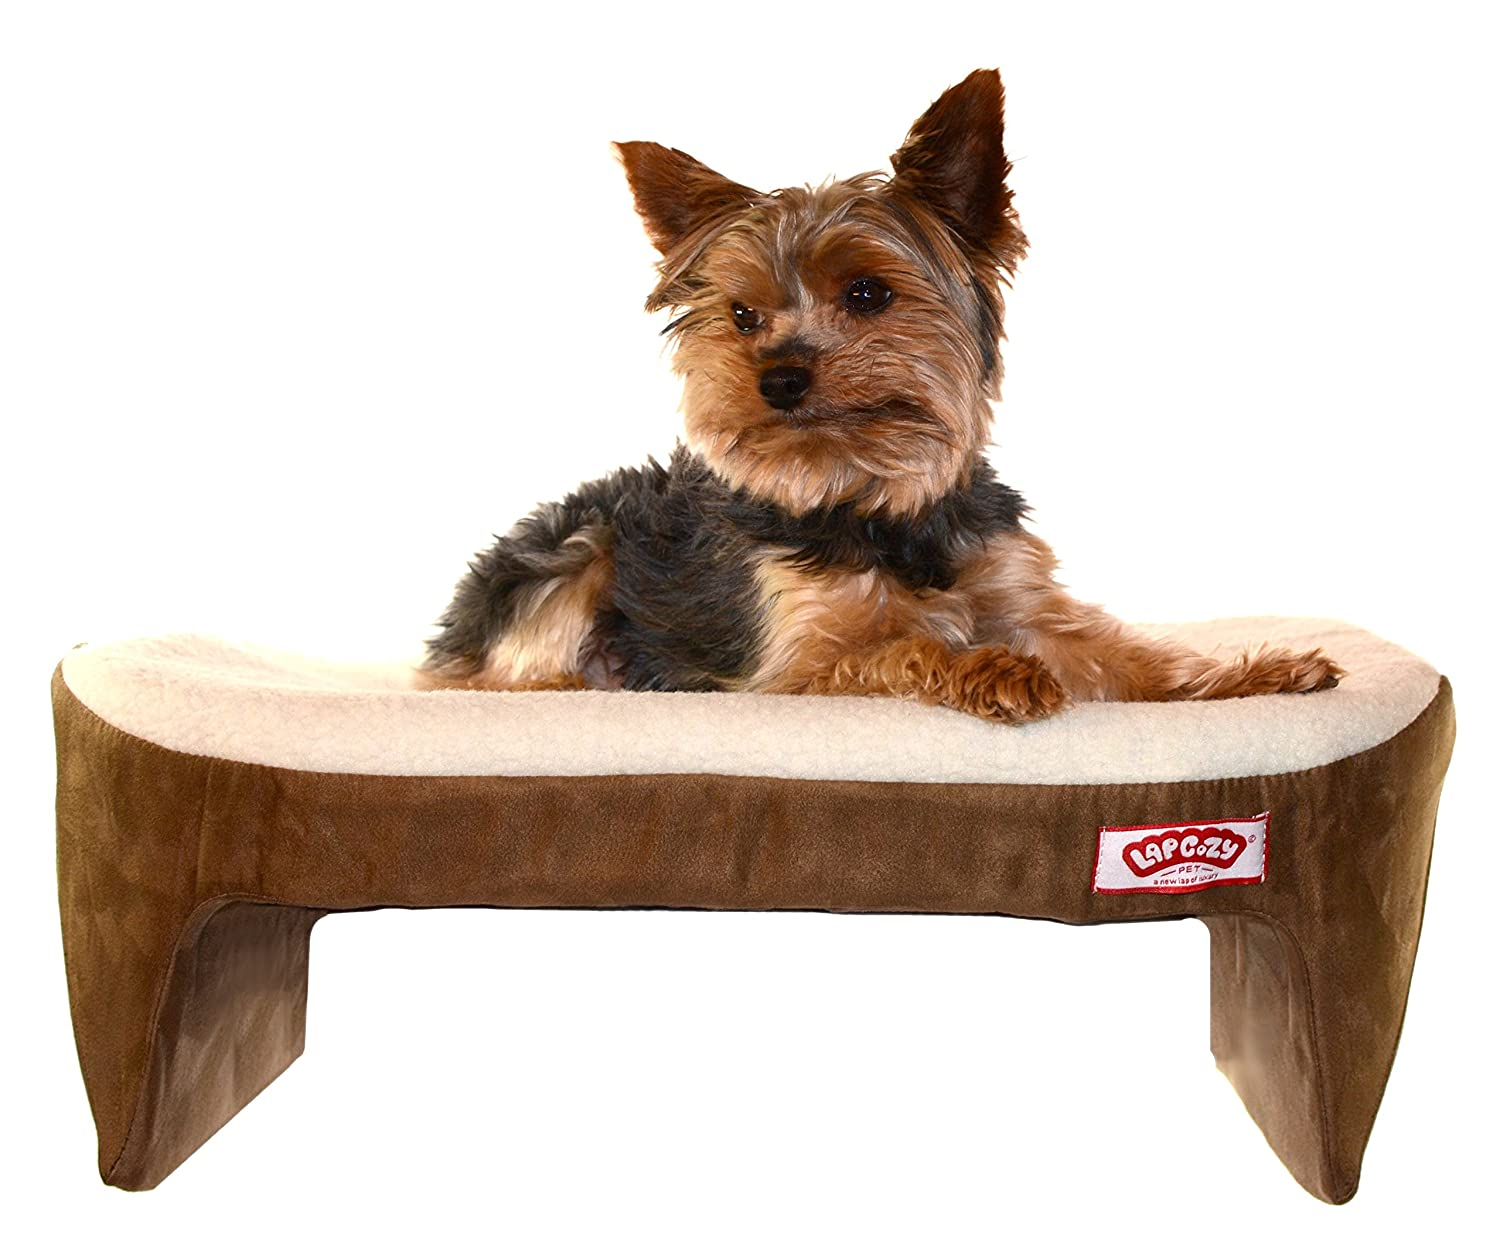 Amazon : Lap Cozy Pet Bed For Small Dogs, Cats And Other Small Pets   Base Made In Usa : Pet Supplies